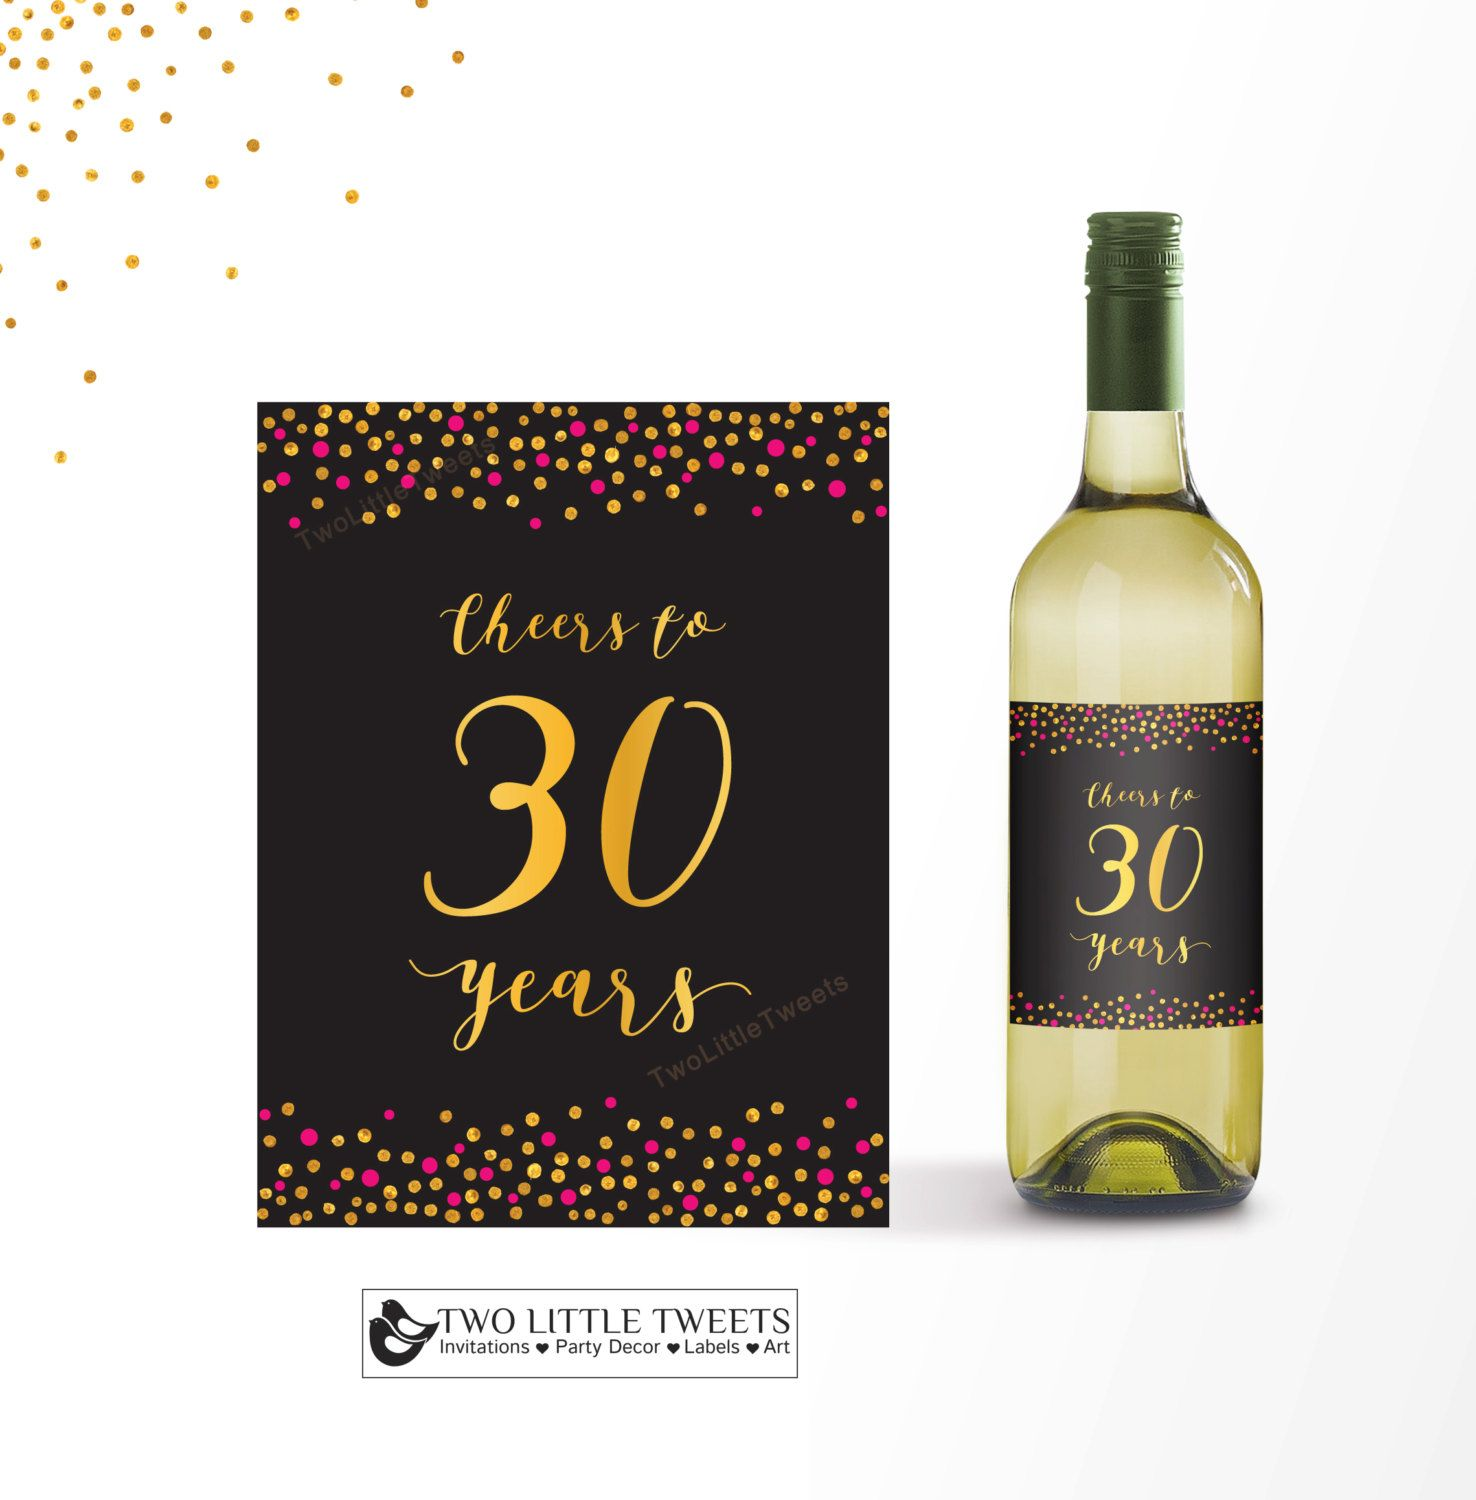 cheers to 30 years wine label printable pink and gold confetti